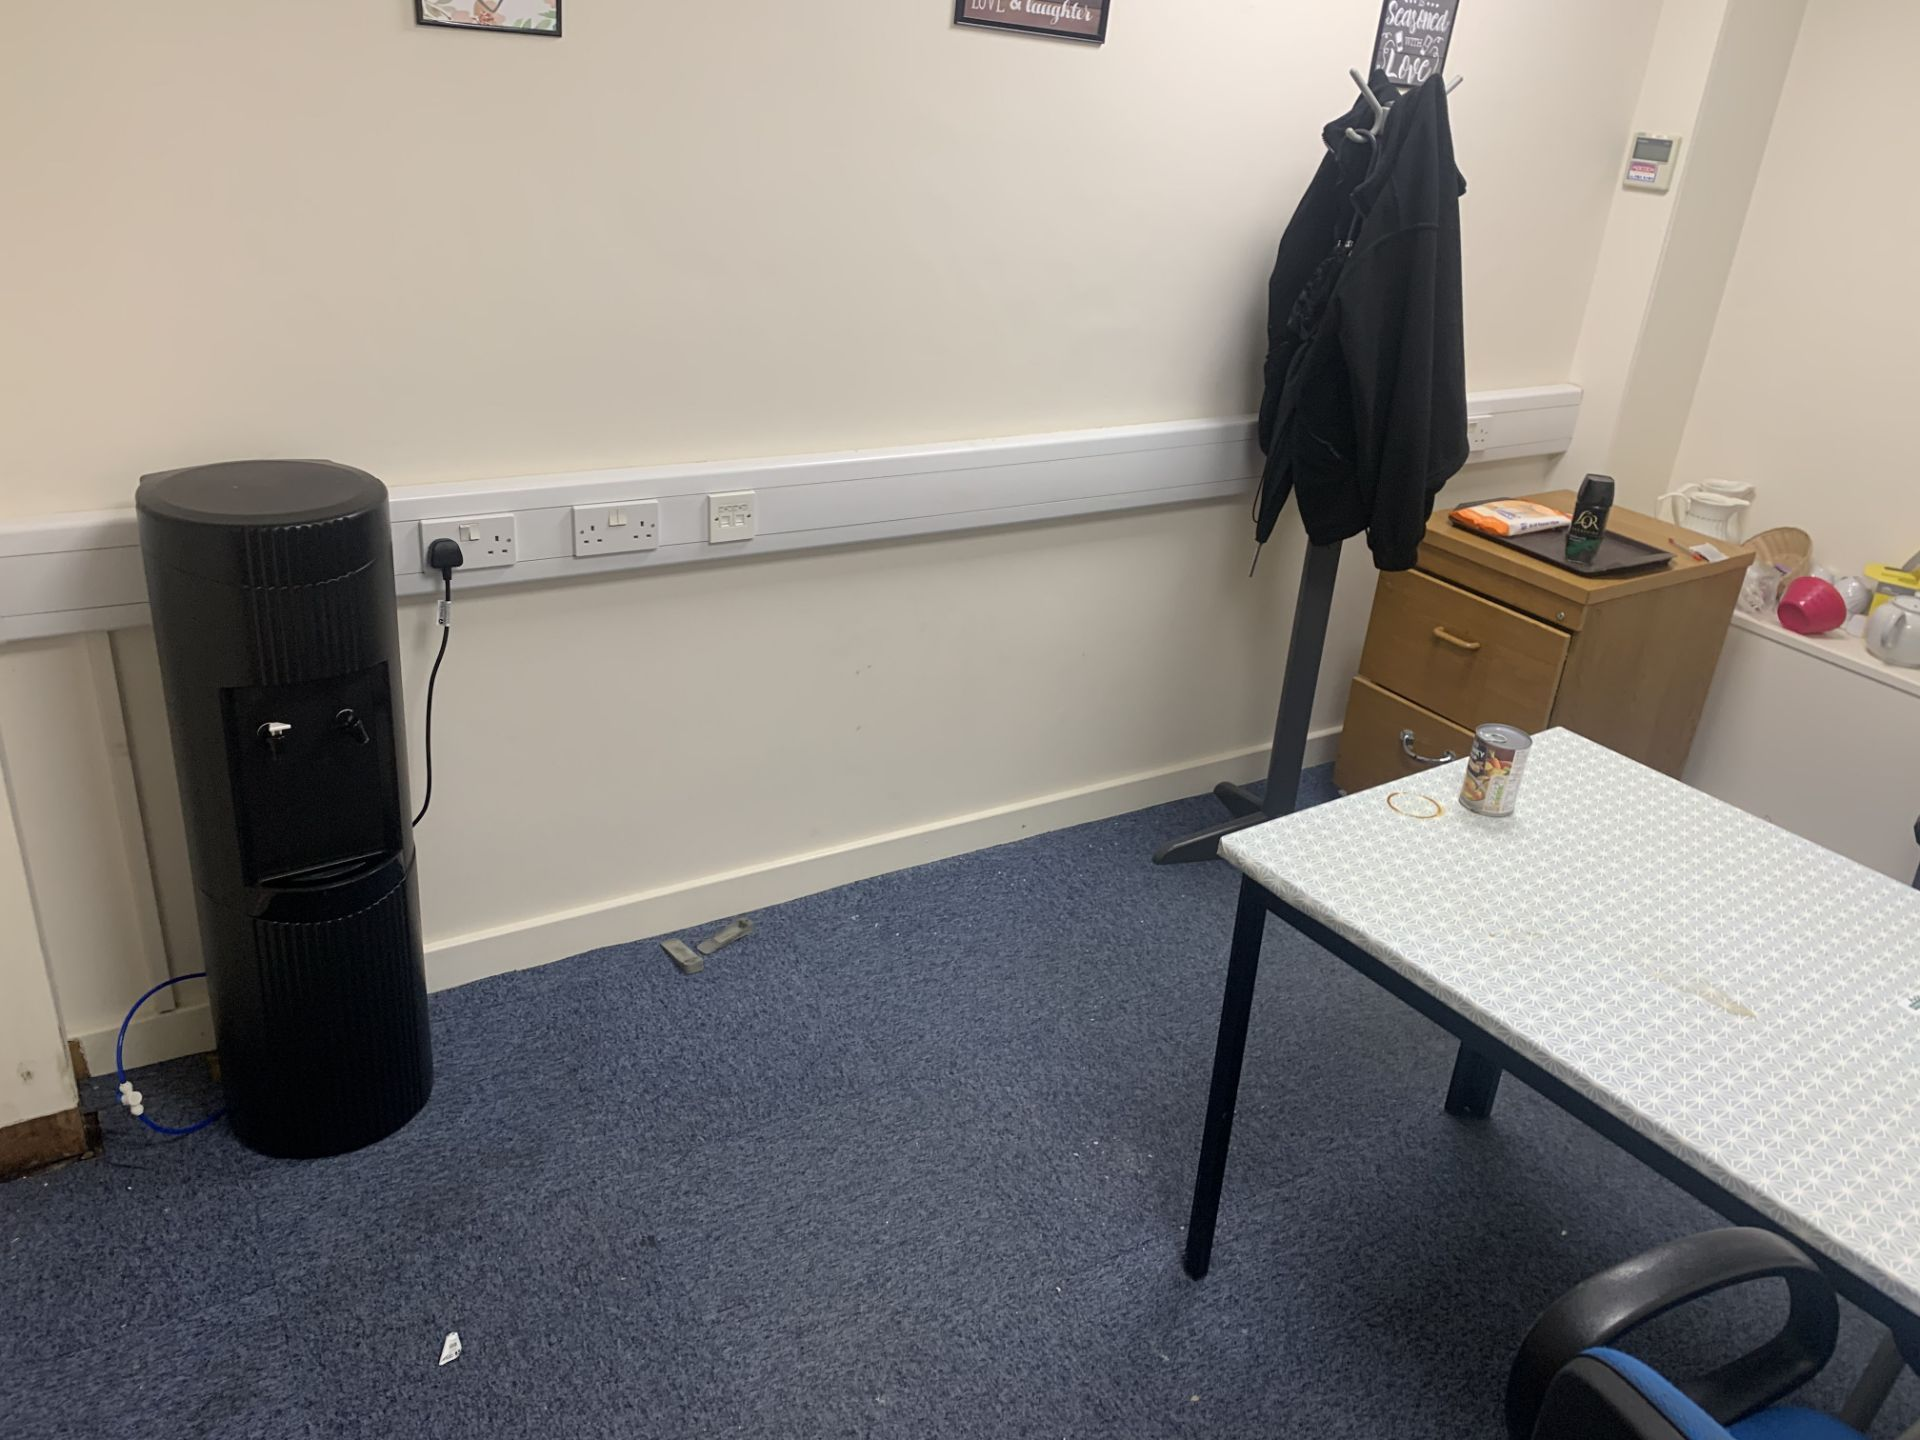 CONTENTS OF CANTEEN TO INCLUDE TOASTERS WATER DISPENSER, 2 CHAIRS, TABLE MUGS, 2 DRAWER CABINET, - Image 2 of 2